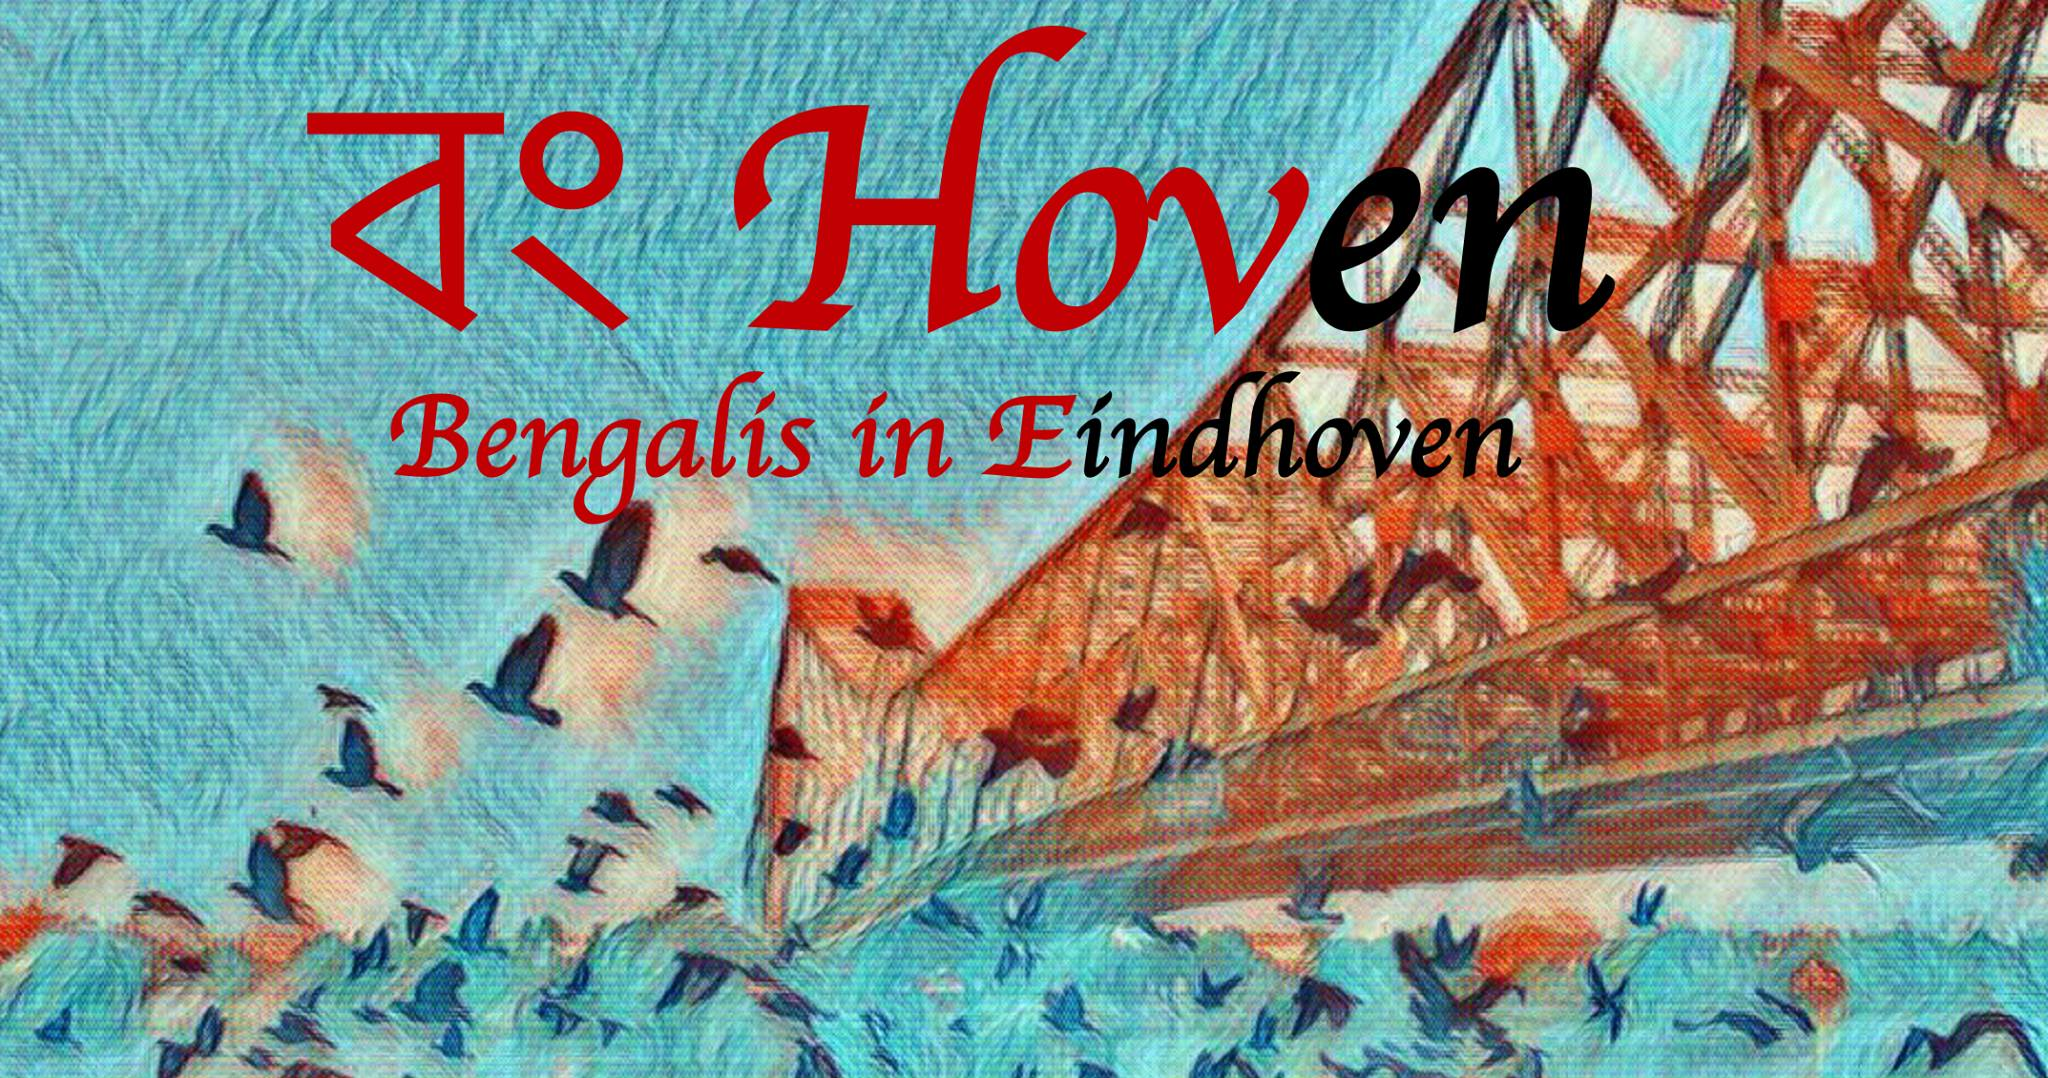 BongHoven ~ Bengalis in Eindhoven